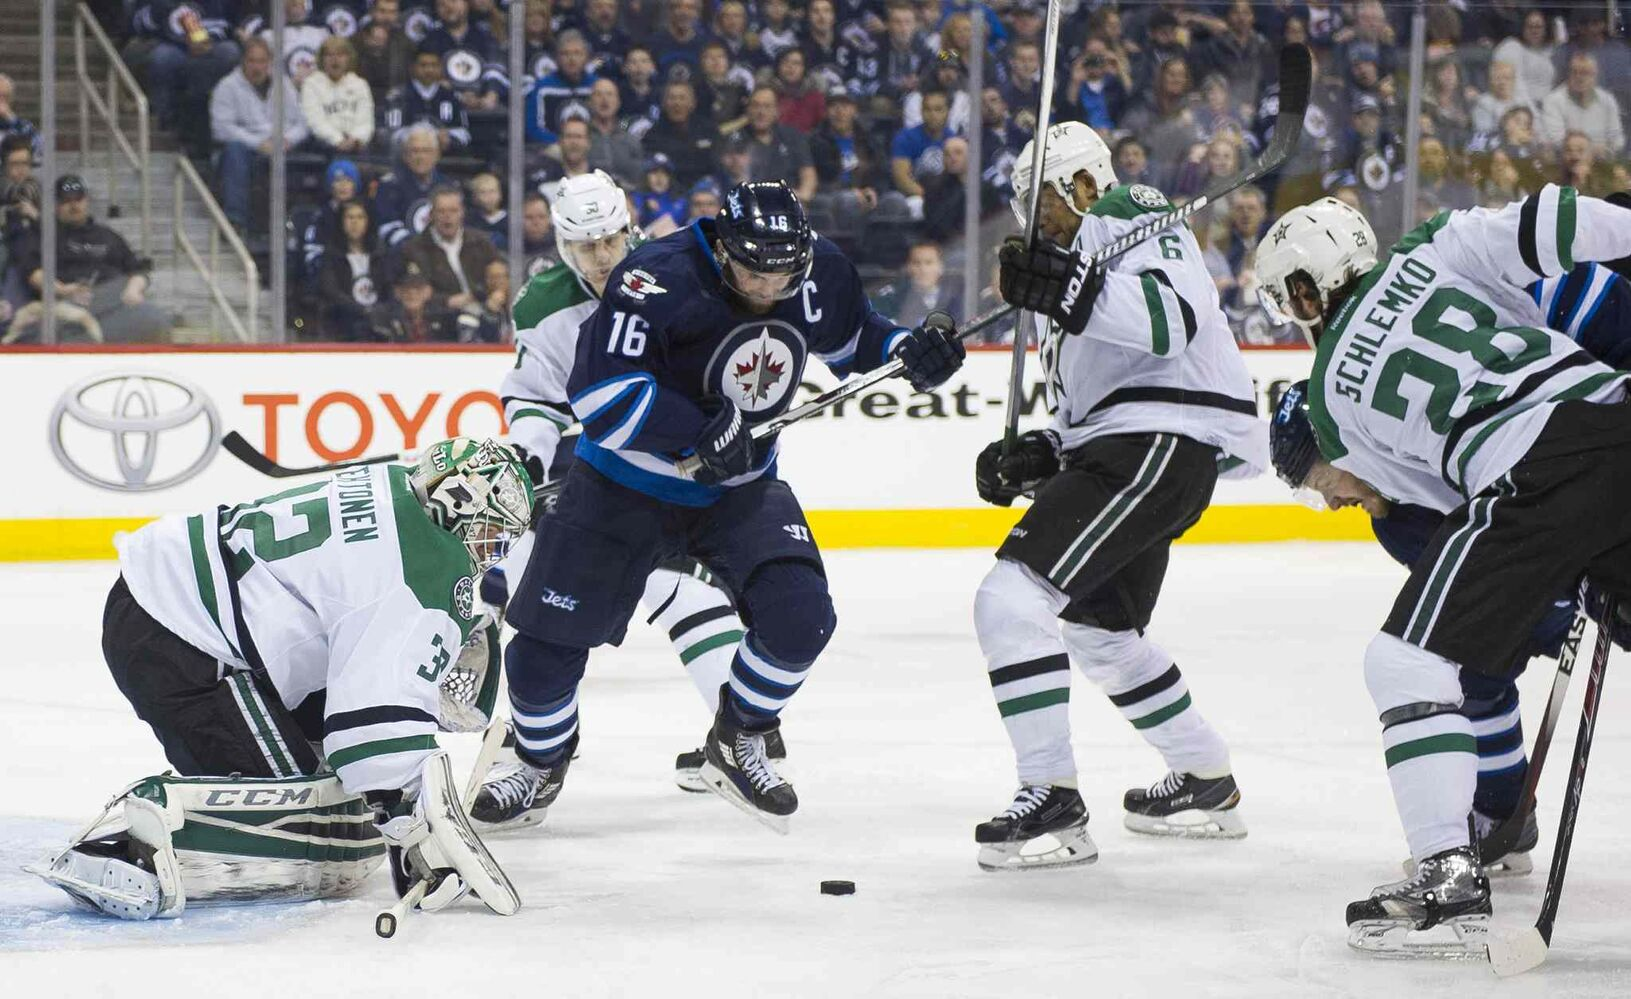 Winnipeg Jets Andrew Ladd (#16) looks for the shot against the Dallas Stars during second period. (David Lipnowski / Winnipeg Free Press)